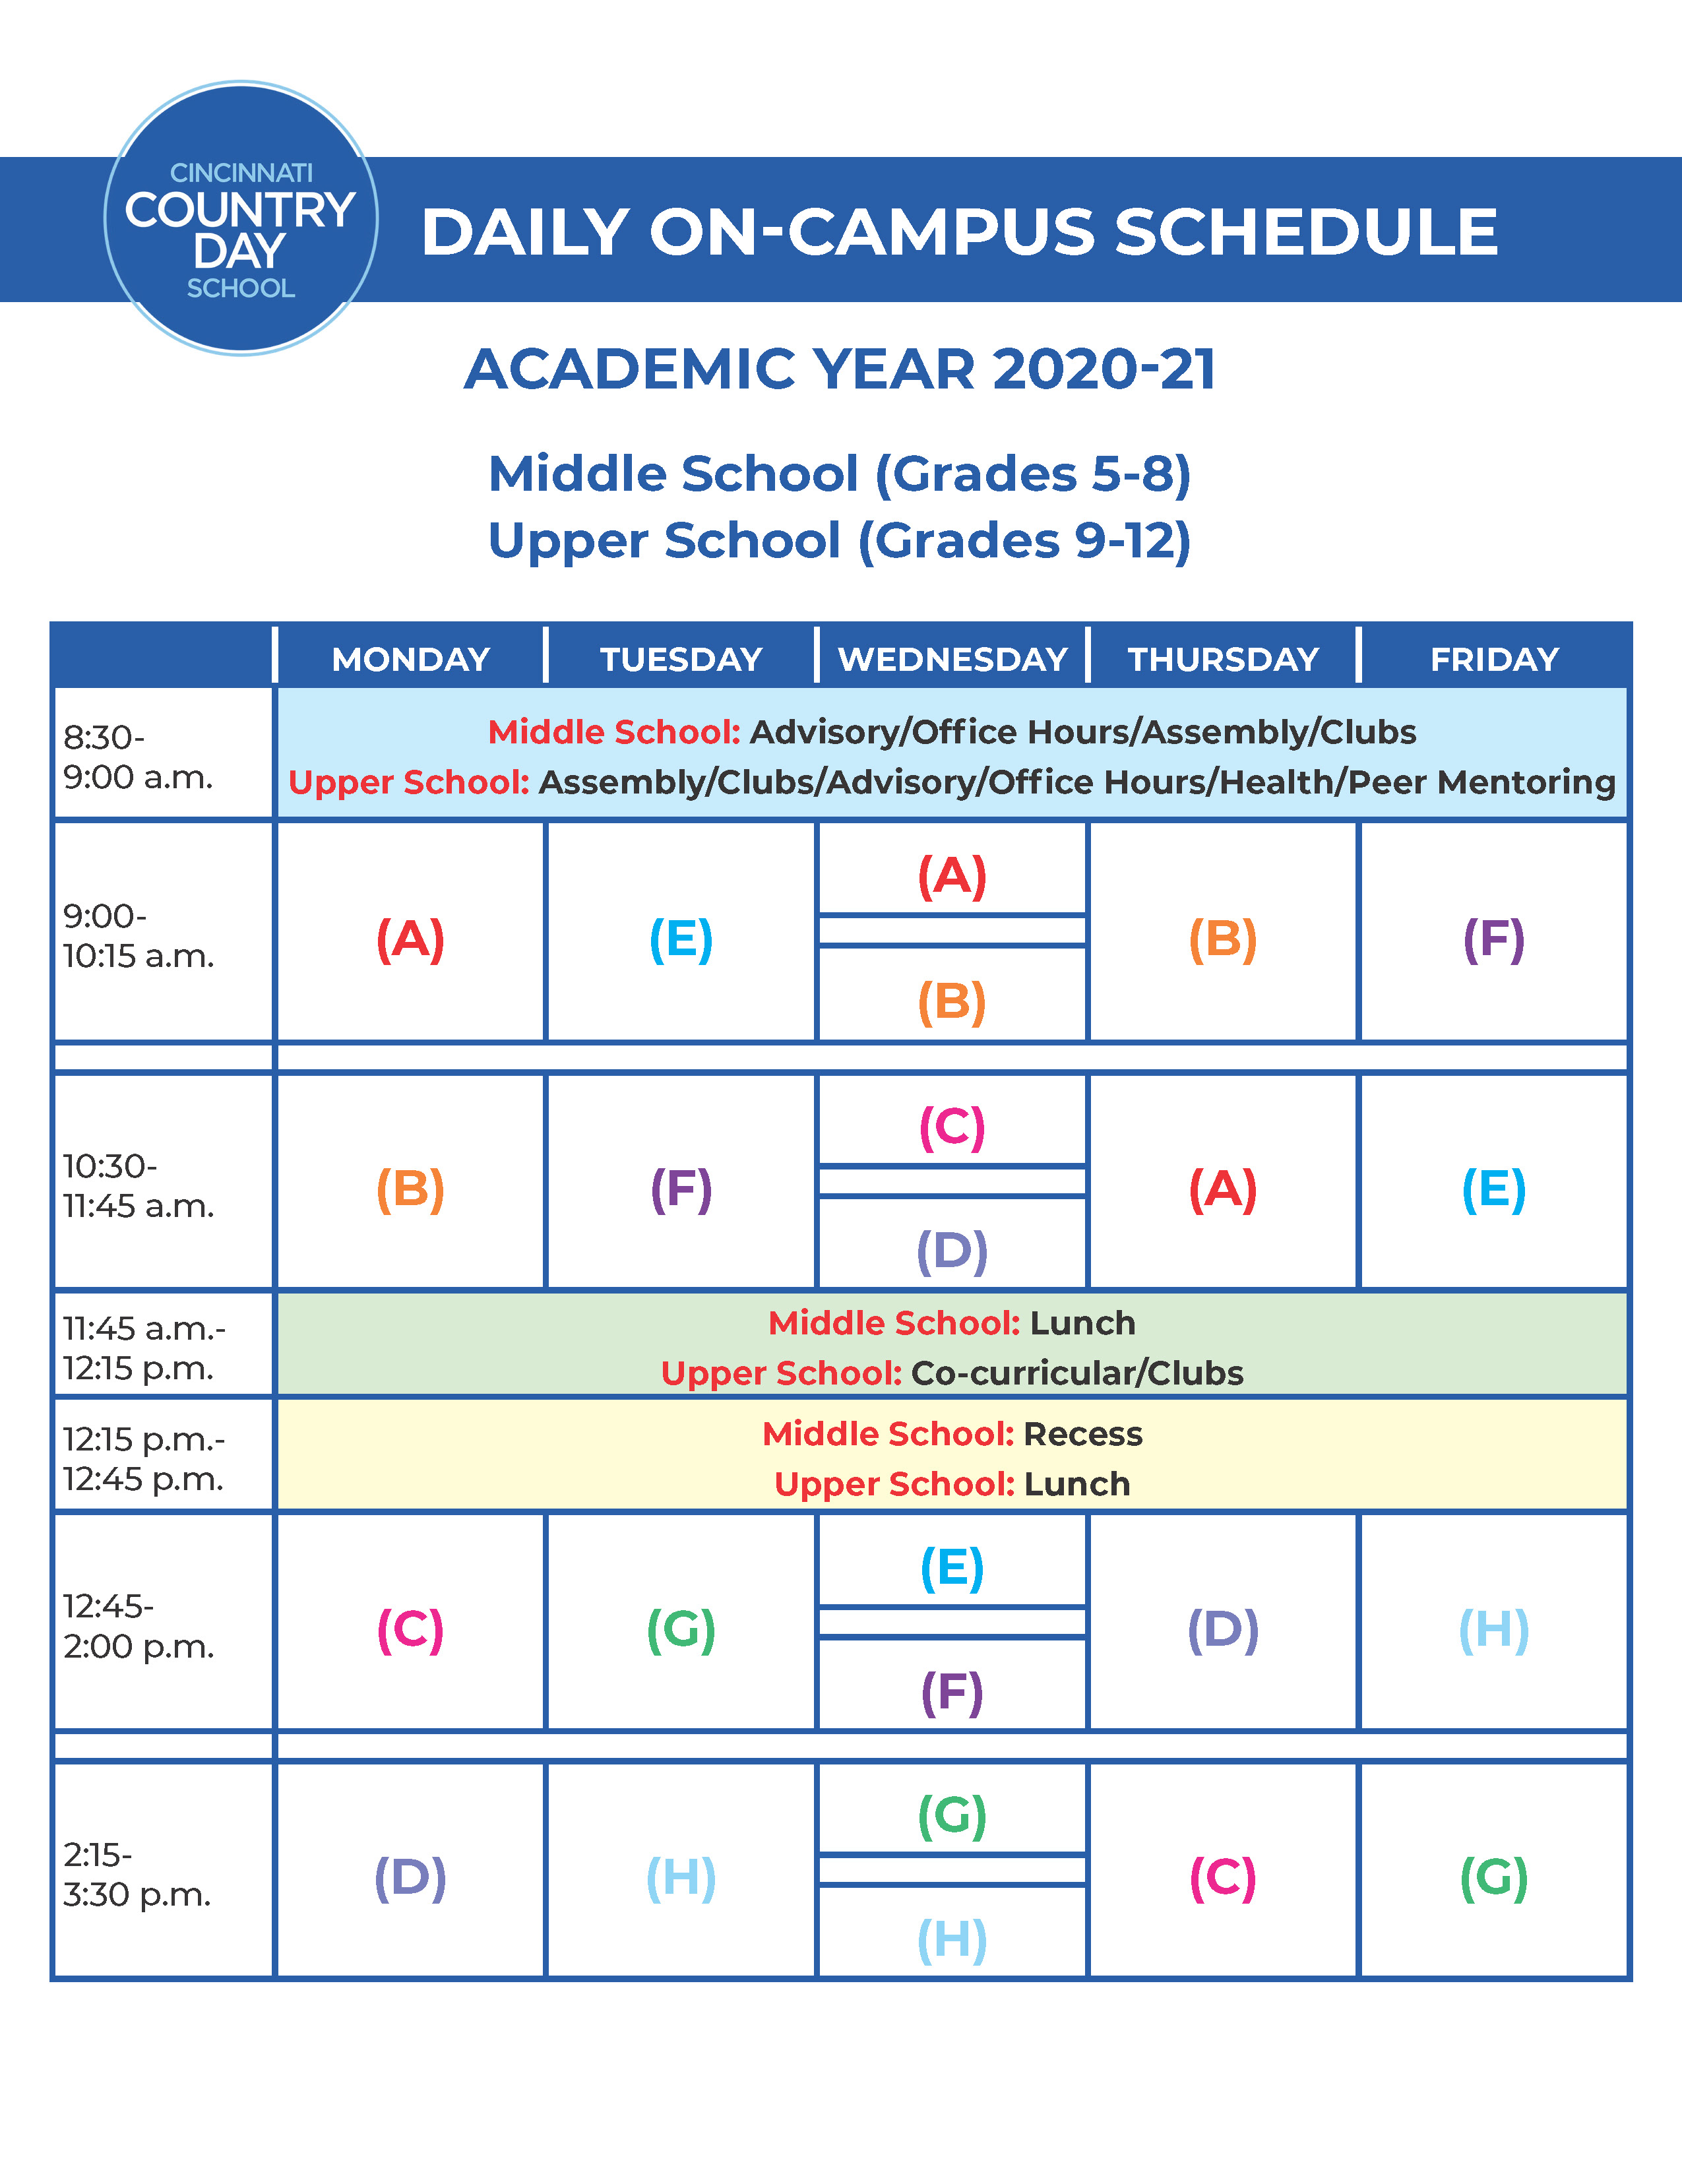 CCDS MS US On campus schedule